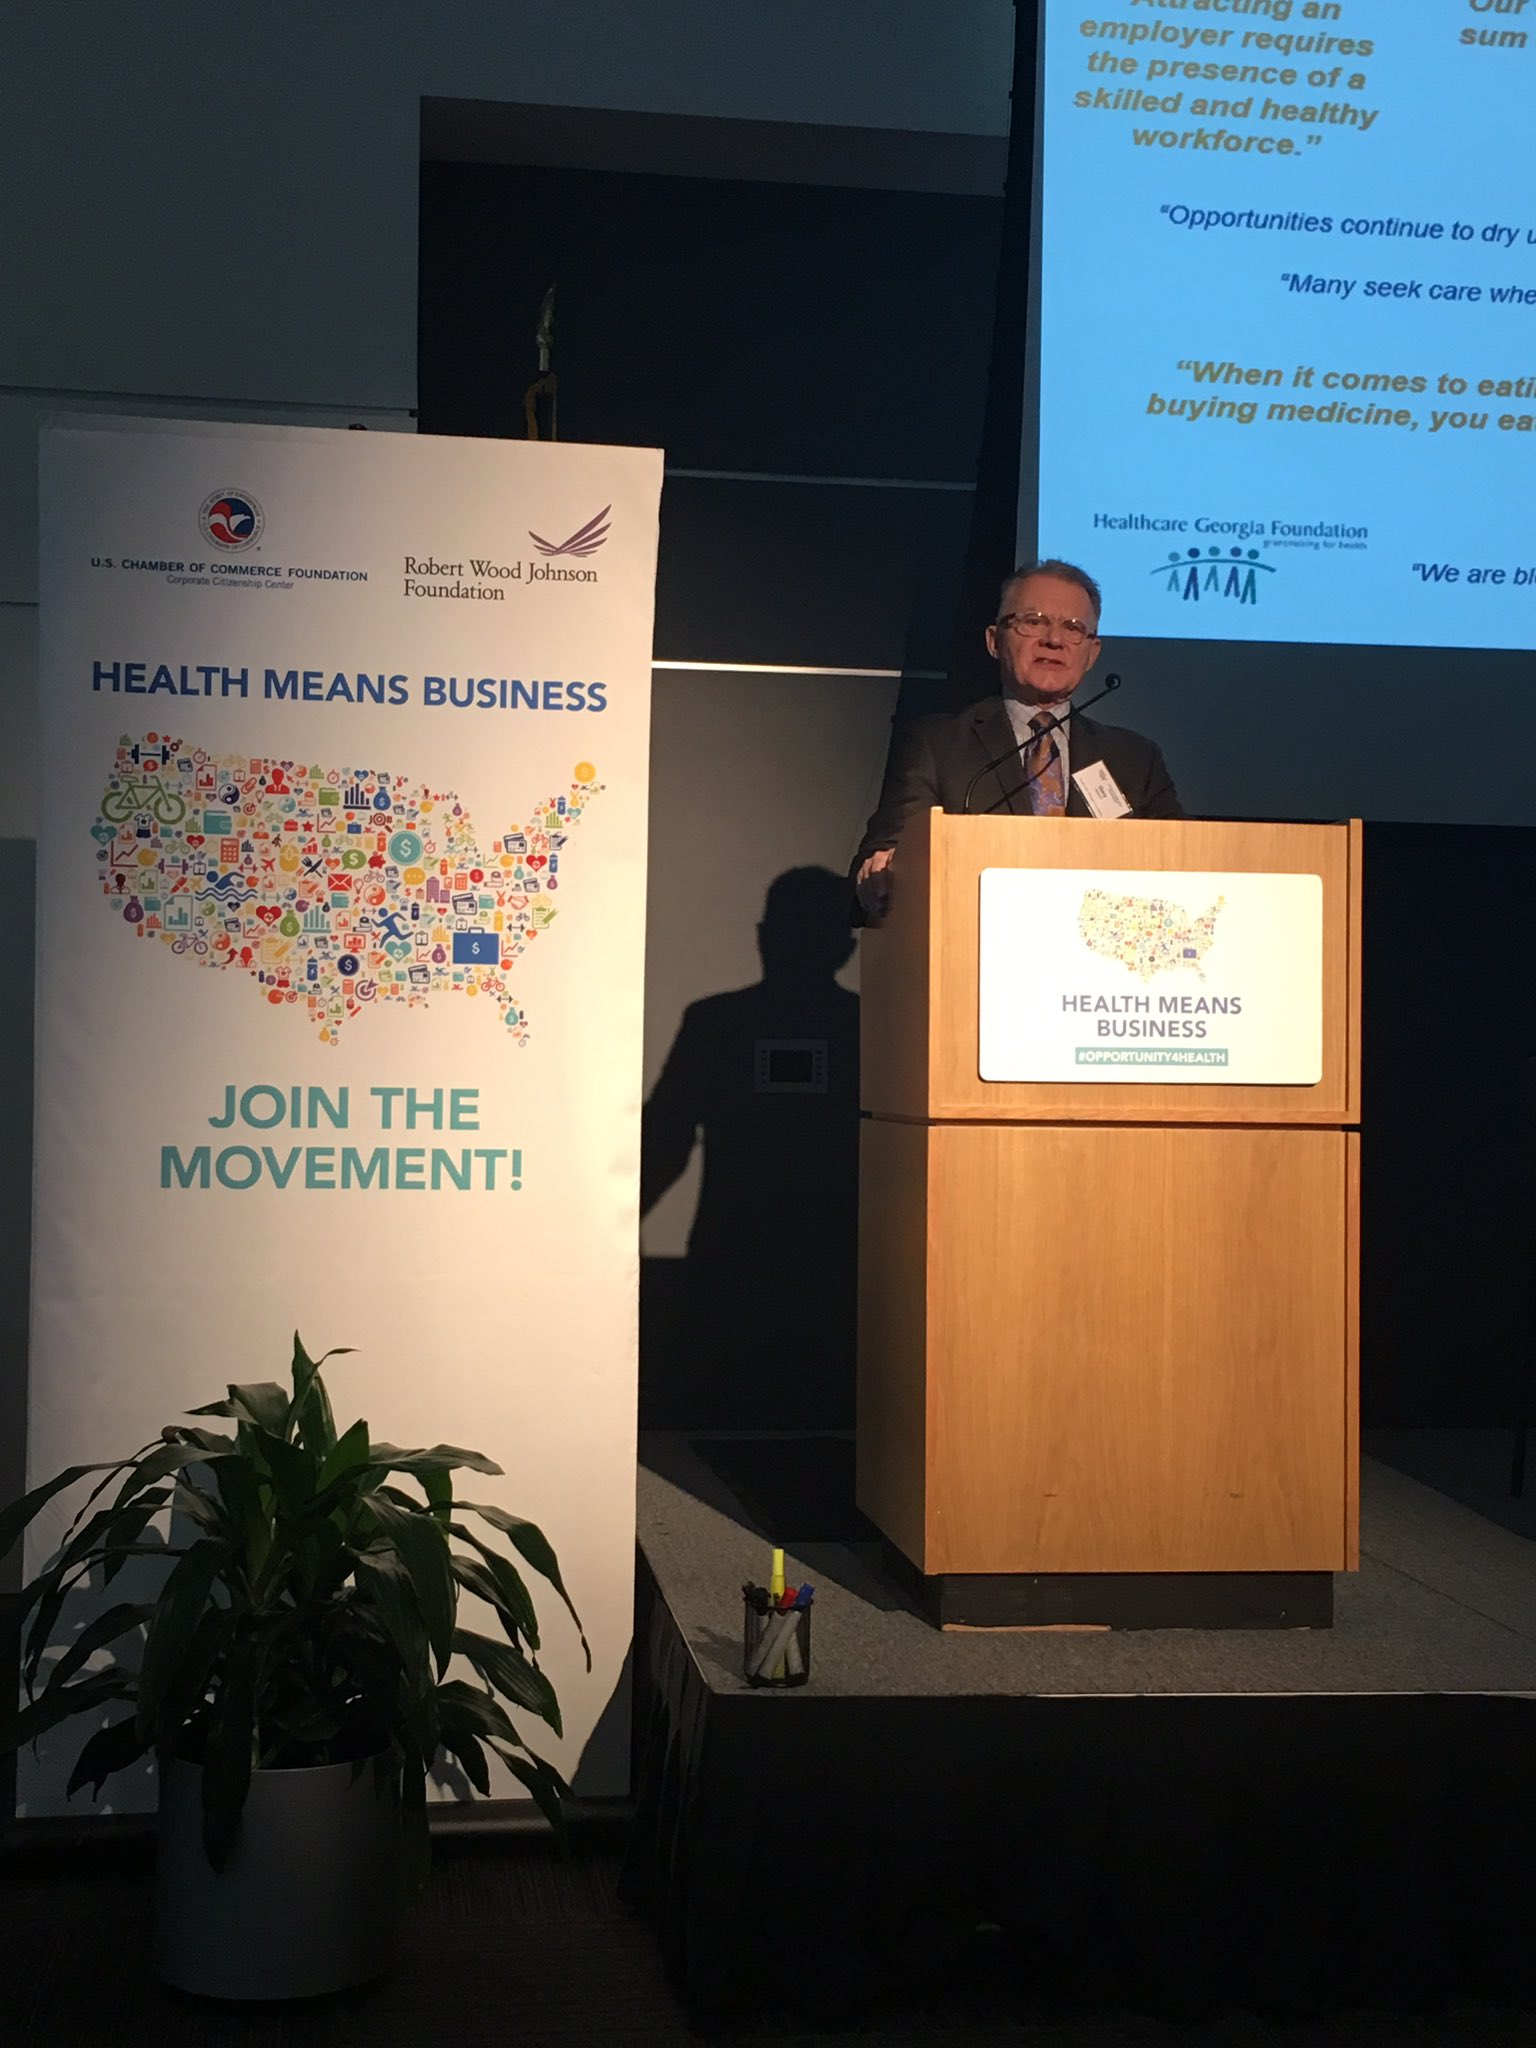 Dr. Nelson kicks off our 12th @HealthMeansBiz Forum in Columbus, GA. #opportunityforhealth https://t.co/c1e6cYs675